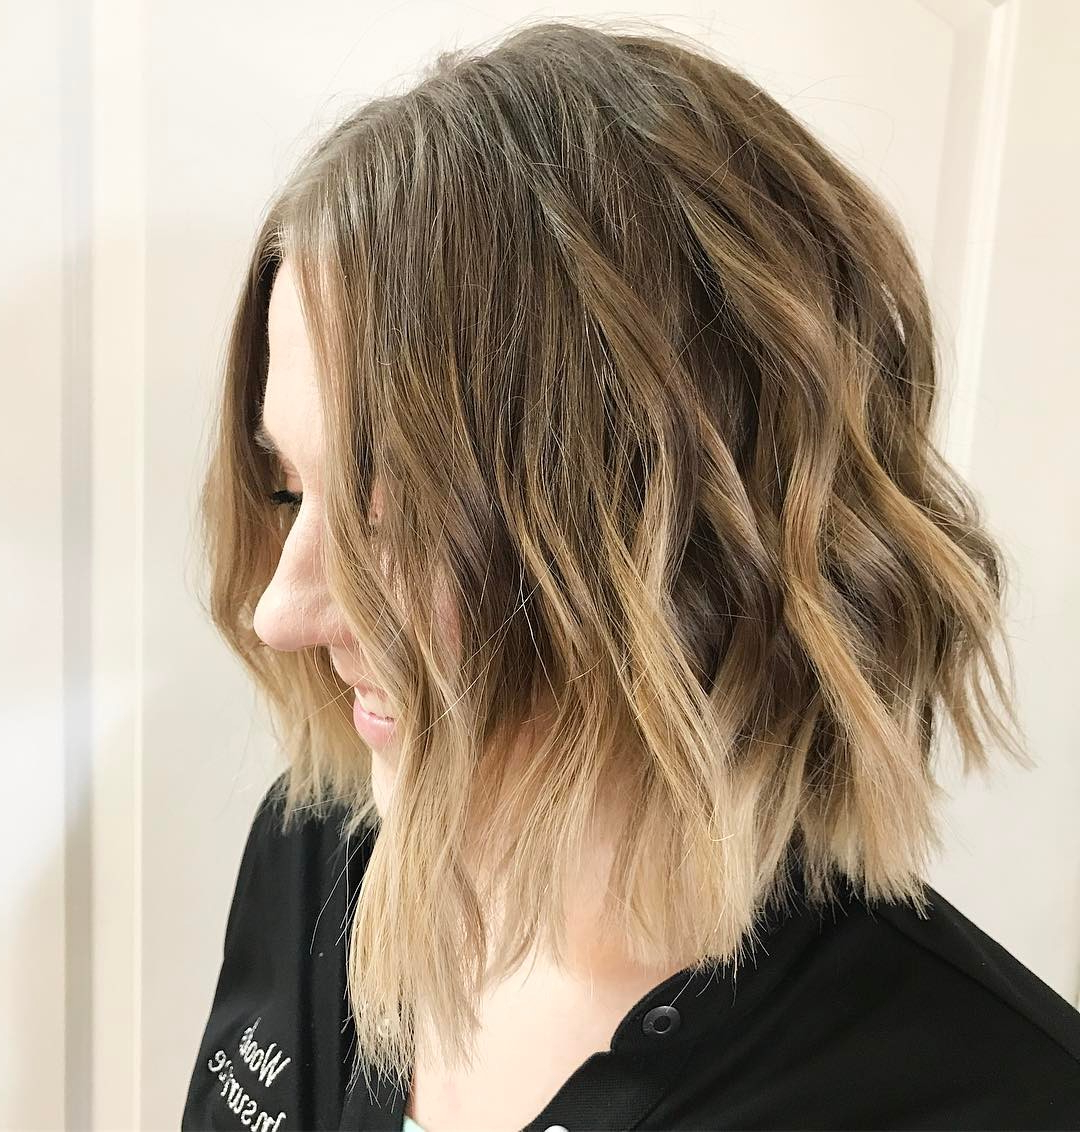 10 Layered Bob Hairstyles – Look Fab In New Blonde Shades! – Popular Within White Blonde Curly Layered Bob Hairstyles (View 3 of 25)